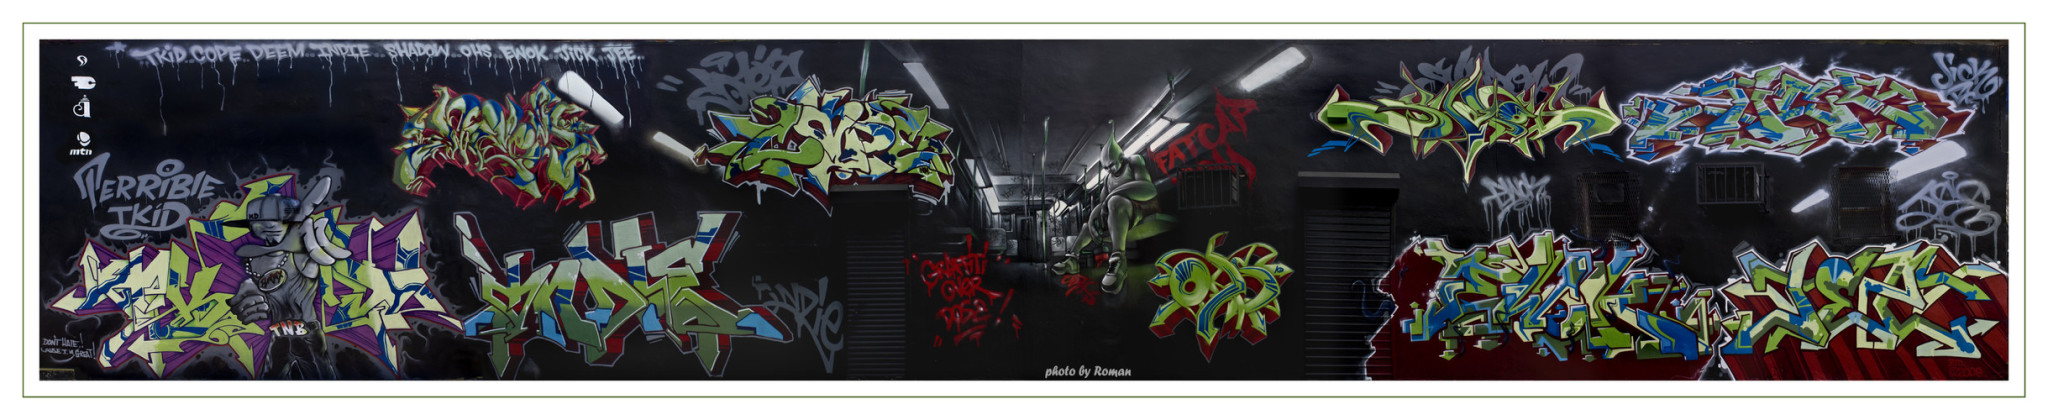 Artwork By Cope2, Shadow, T-kid in New York City